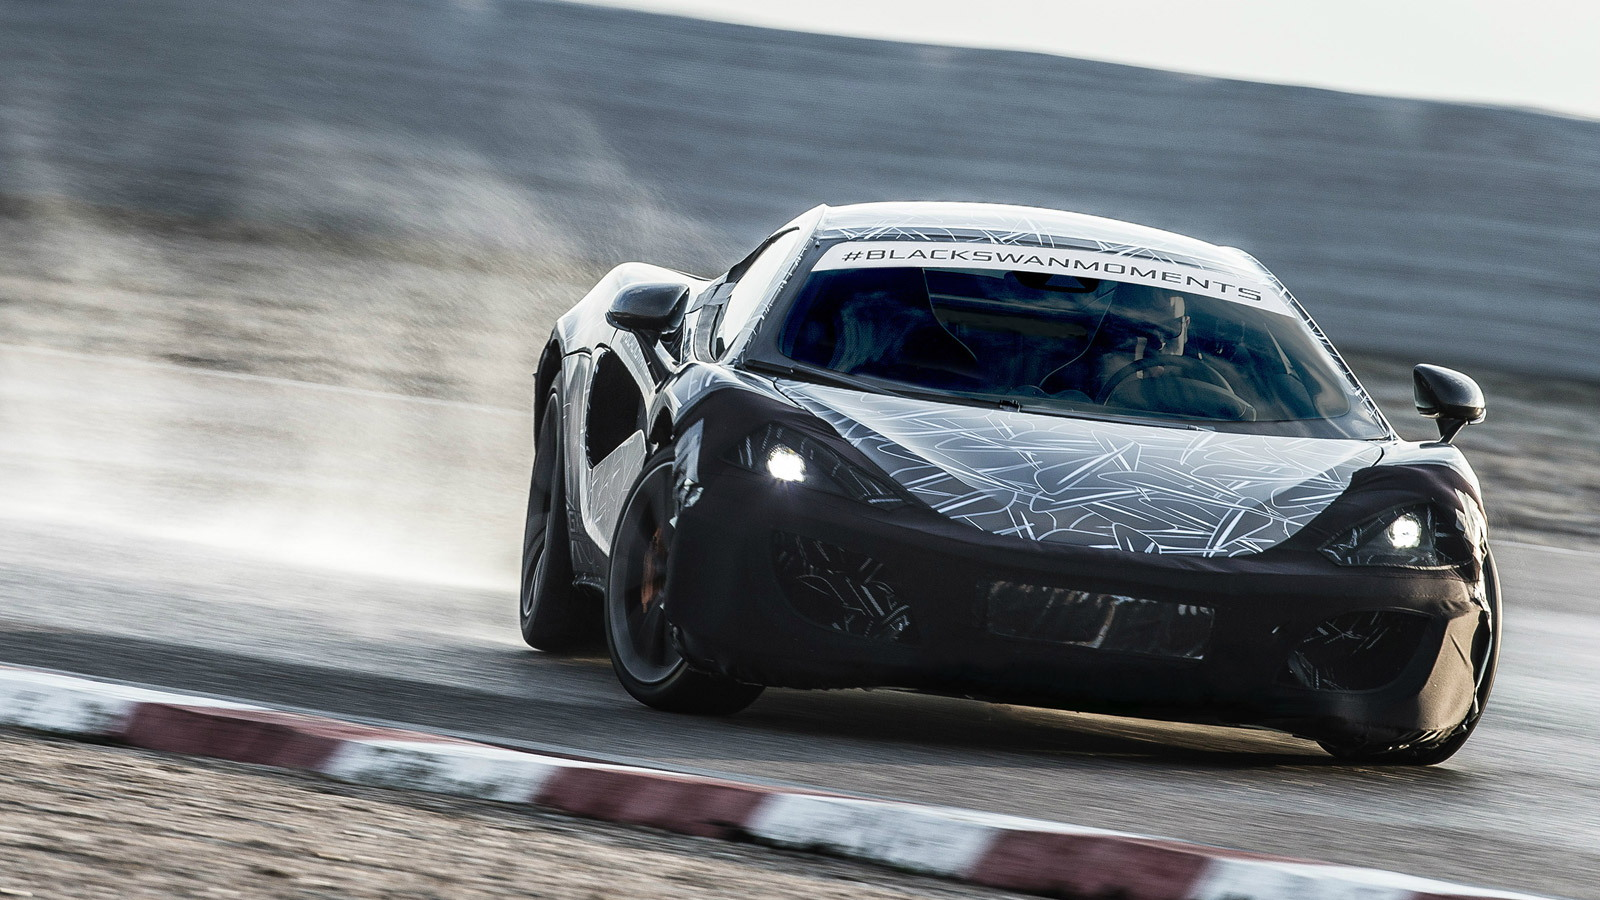 Teaser for McLaren 570S Coupe debuting at 2015 New York Auto Show